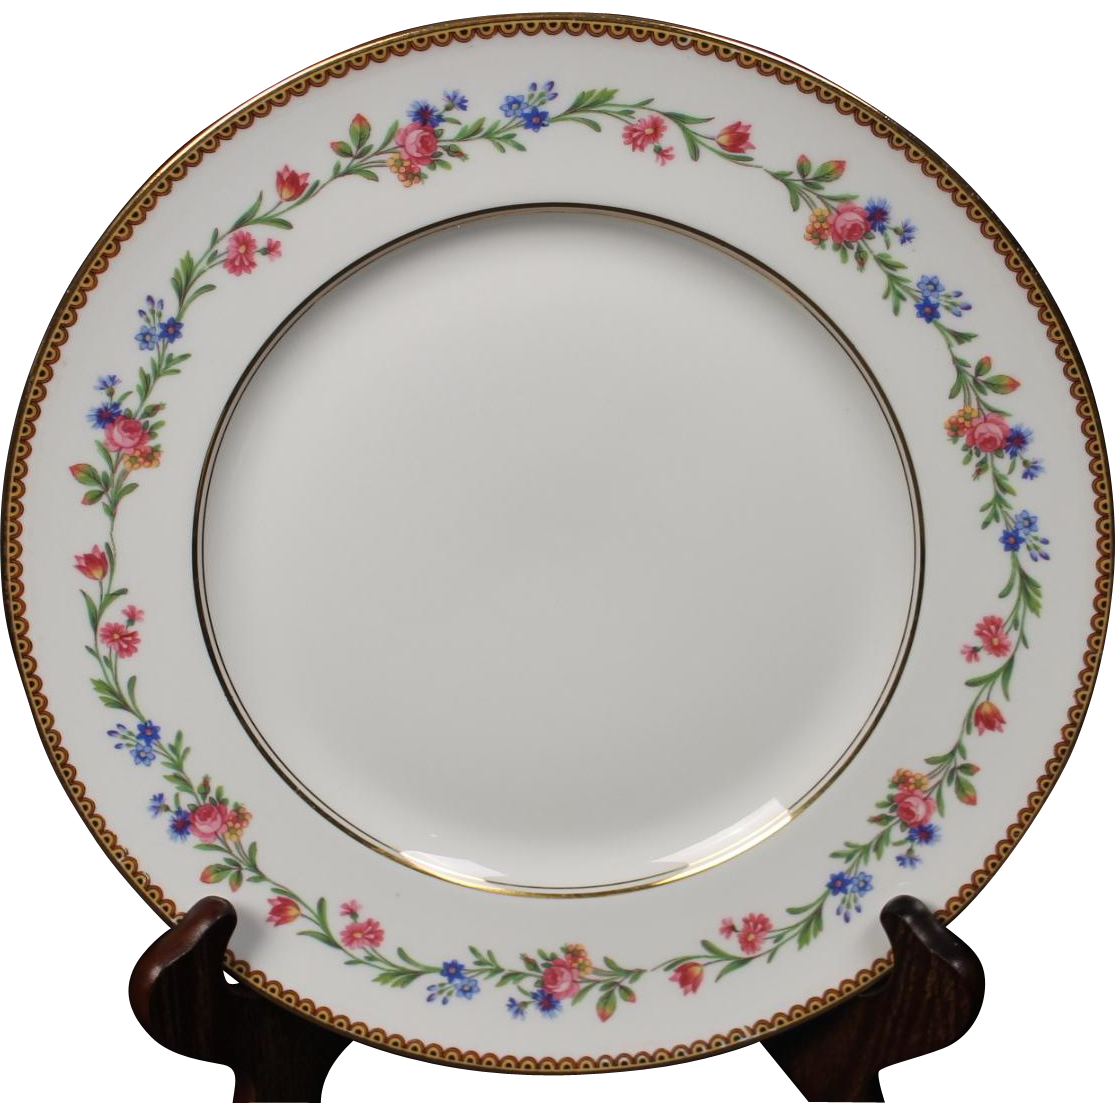 Raynaud & Co. Limoges Dinner Plate